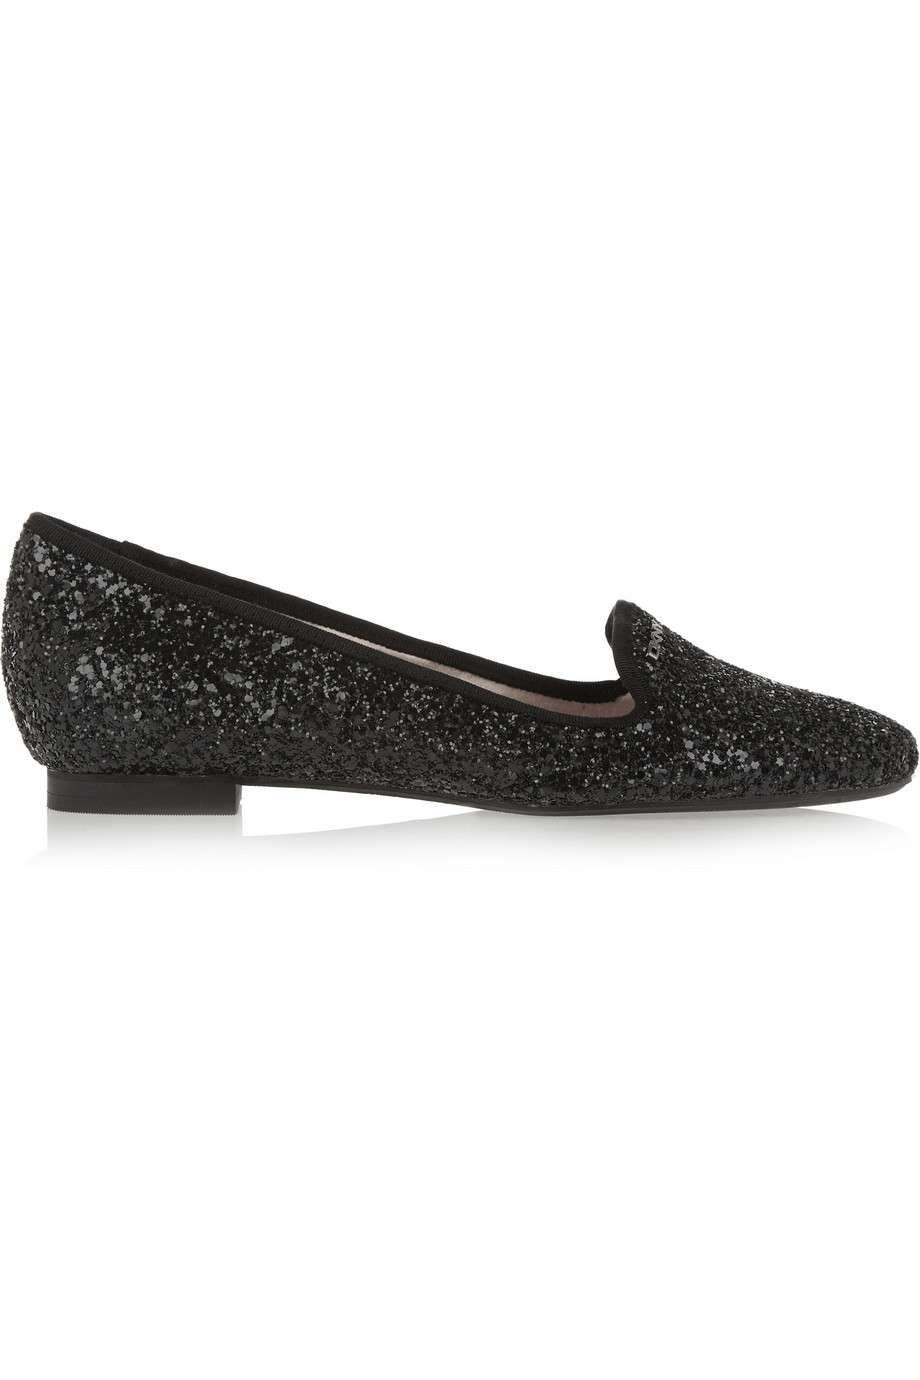 Carlotta Sequined Leather Slippers Black - predominant colour: black; occasions: casual, creative work; material: fabric; heel height: flat; embellishment: sequins; toe: round toe; finish: metallic; pattern: plain; style: slippers; season: a/w 2015; wardrobe: highlight